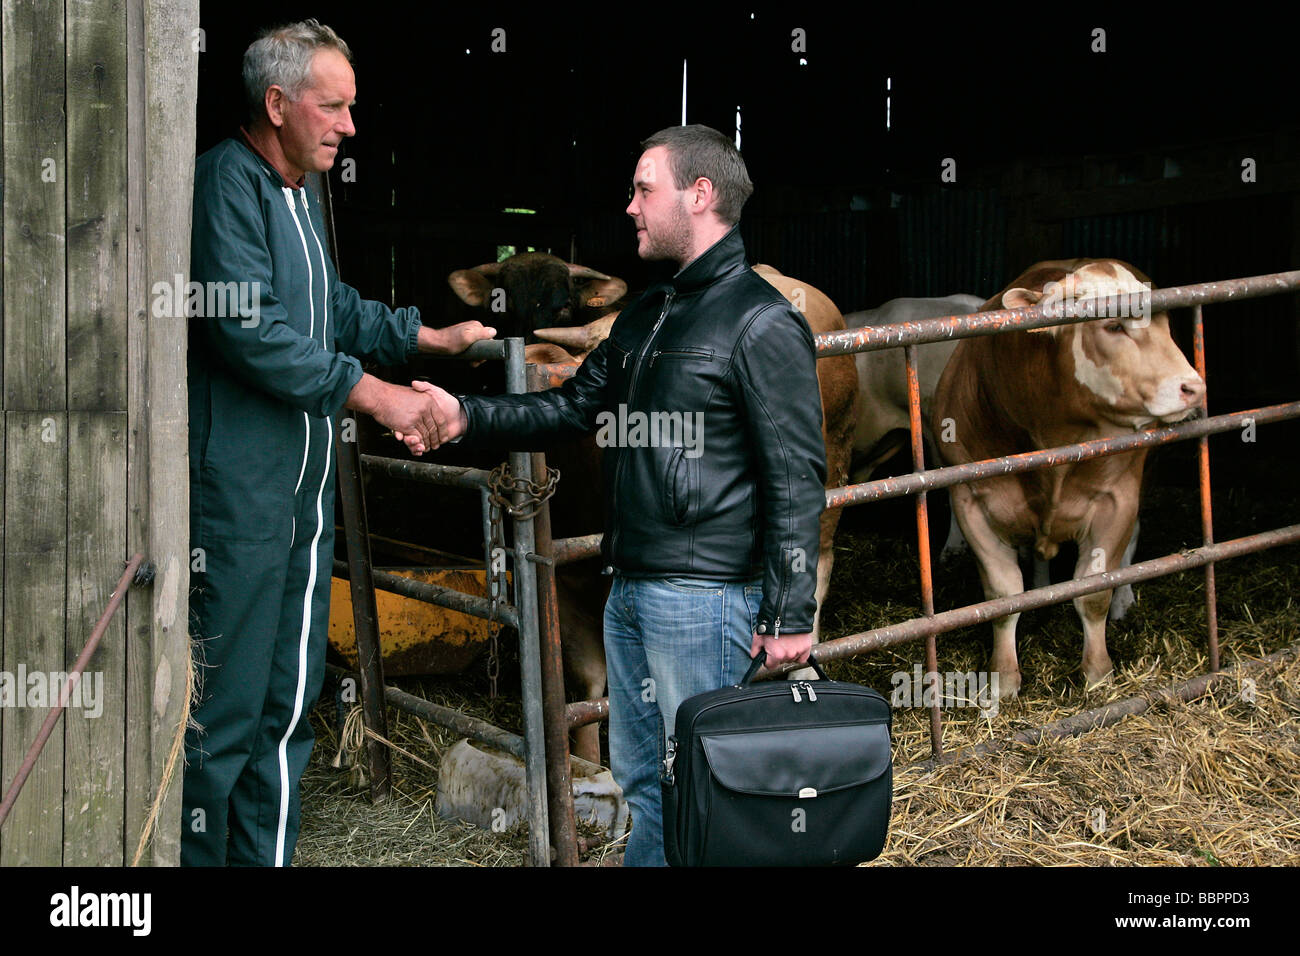 INSURANCE AGENT ON HIS CLIENT'S FARM, NORMANDY, FRANCE - Stock Image